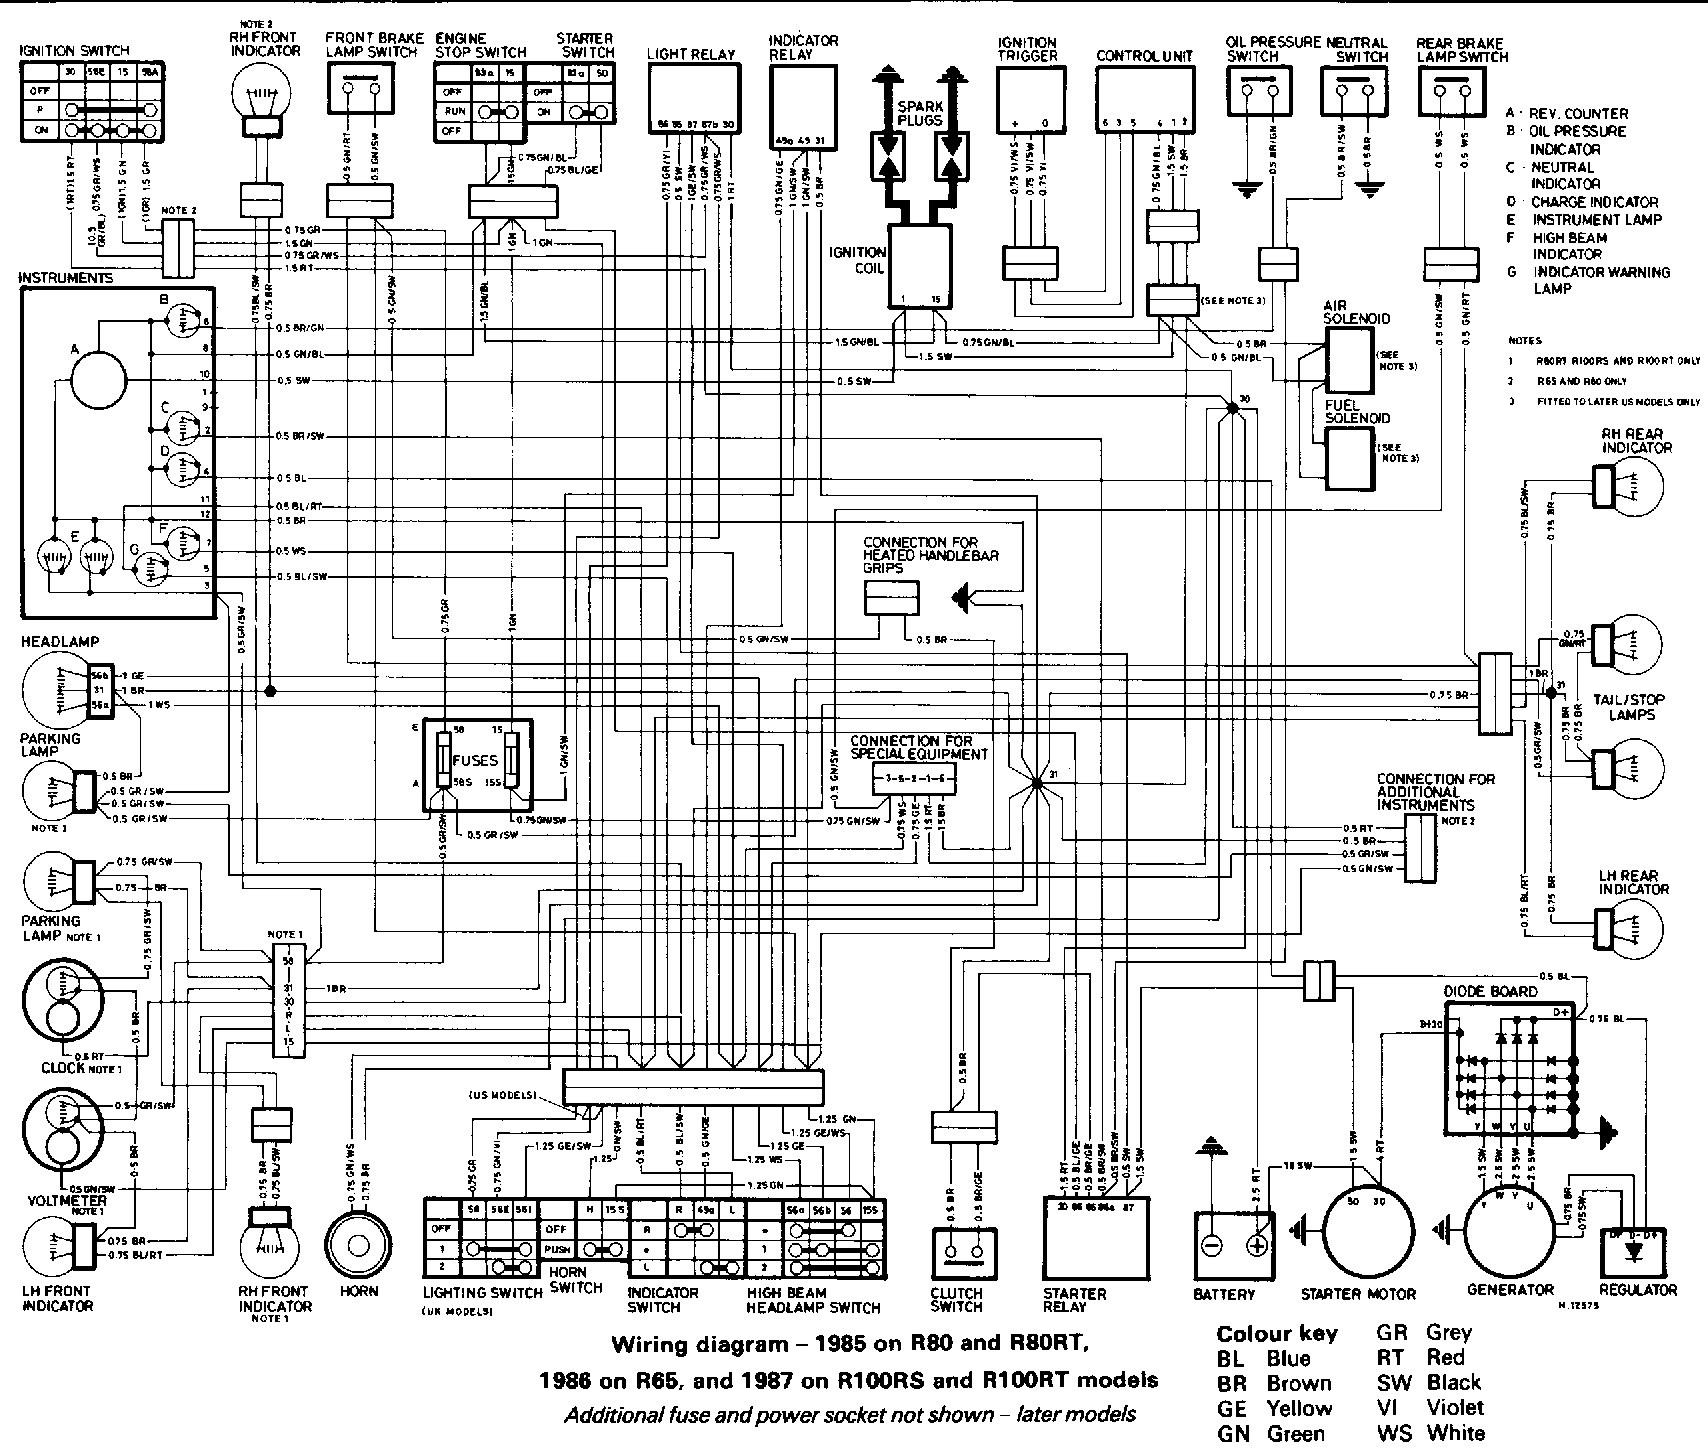 97 Dakotum 2 5 Engine Diagram